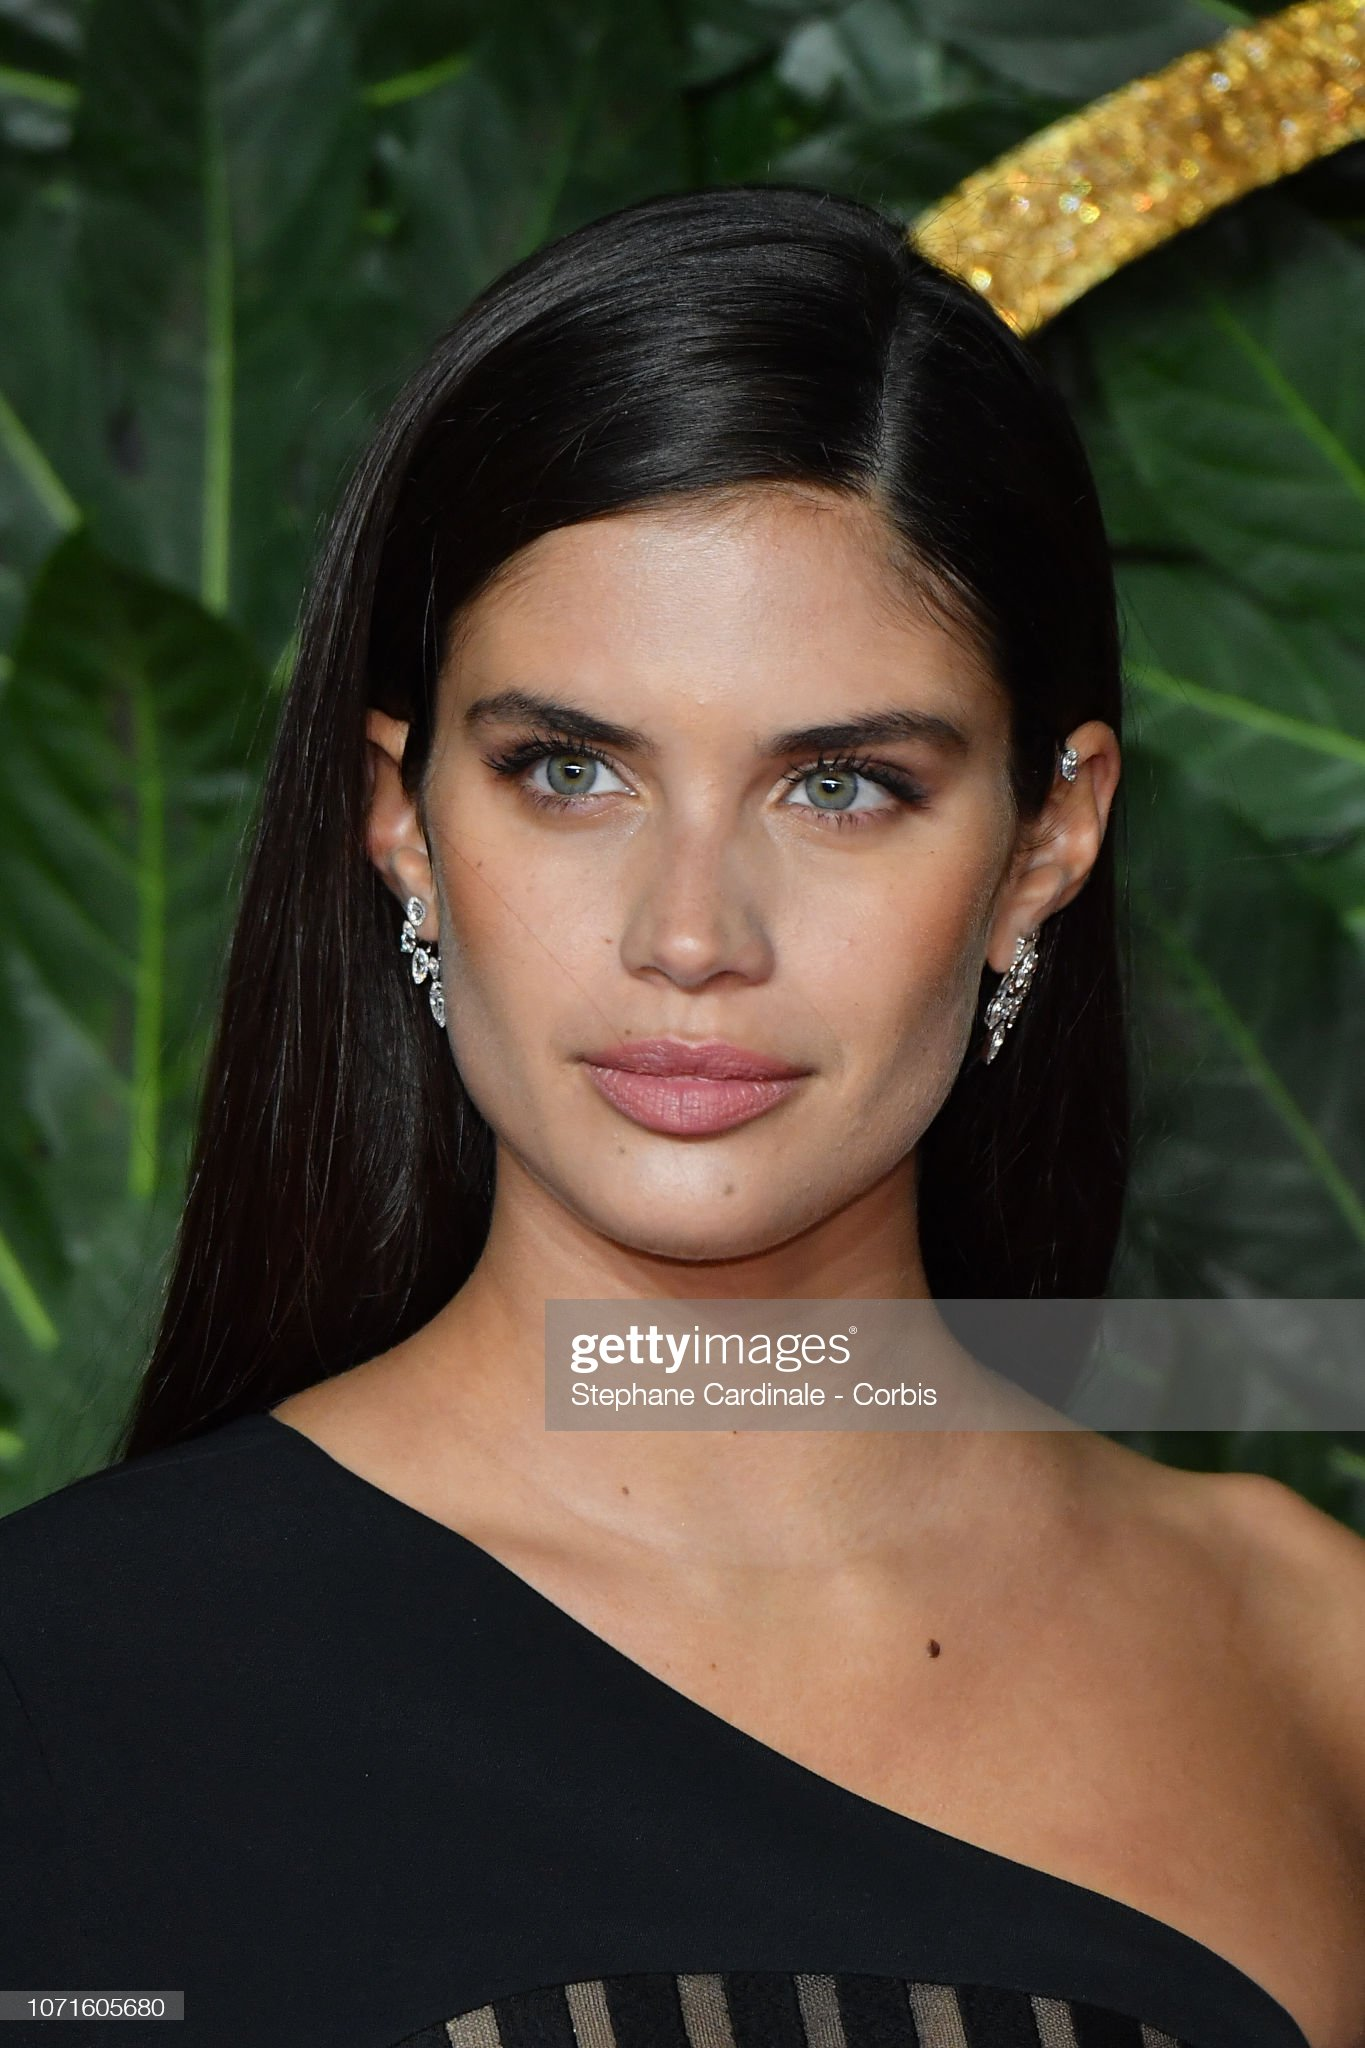 Sara Sampaio (galería de fotos) - pictures Sara-sampaio-attends-the-fashion-awards-2018-in-partnership-with-at-picture-id1071605680?s=2048x2048